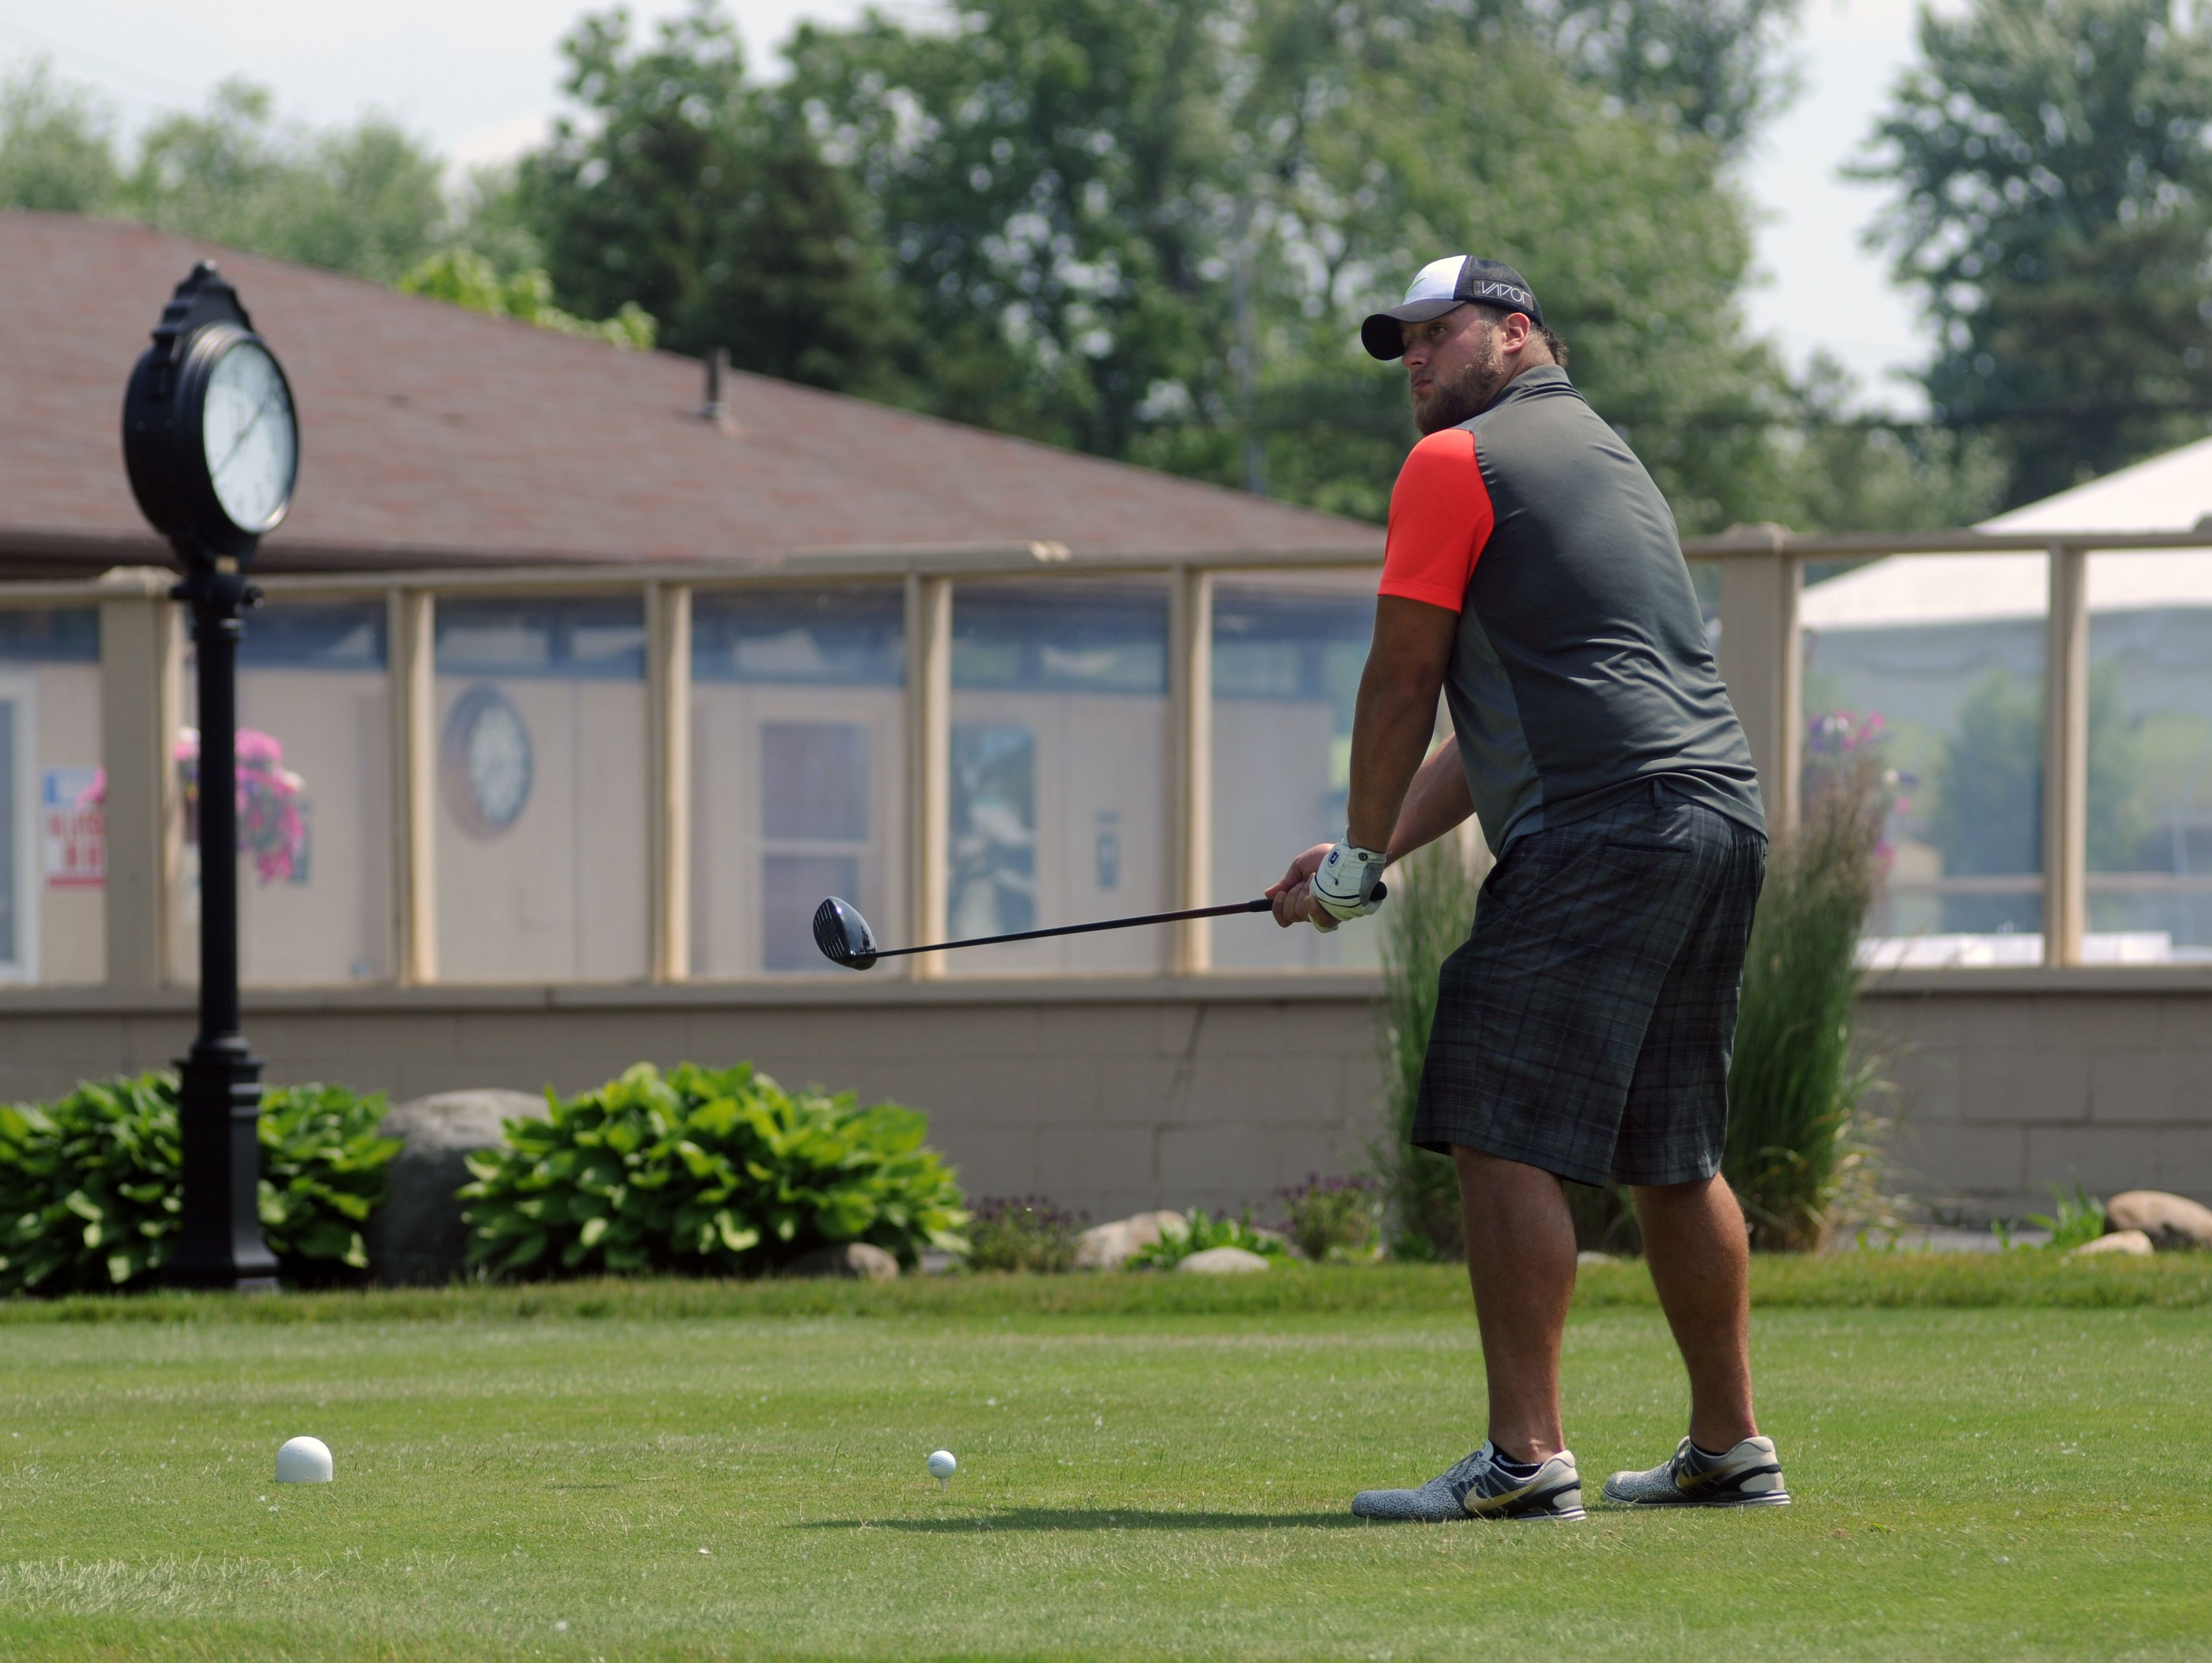 Tim Lelito readies his drive Monday, June 20, during the Lelito Legacy Golf Outing at St. Clair Golf Cub.